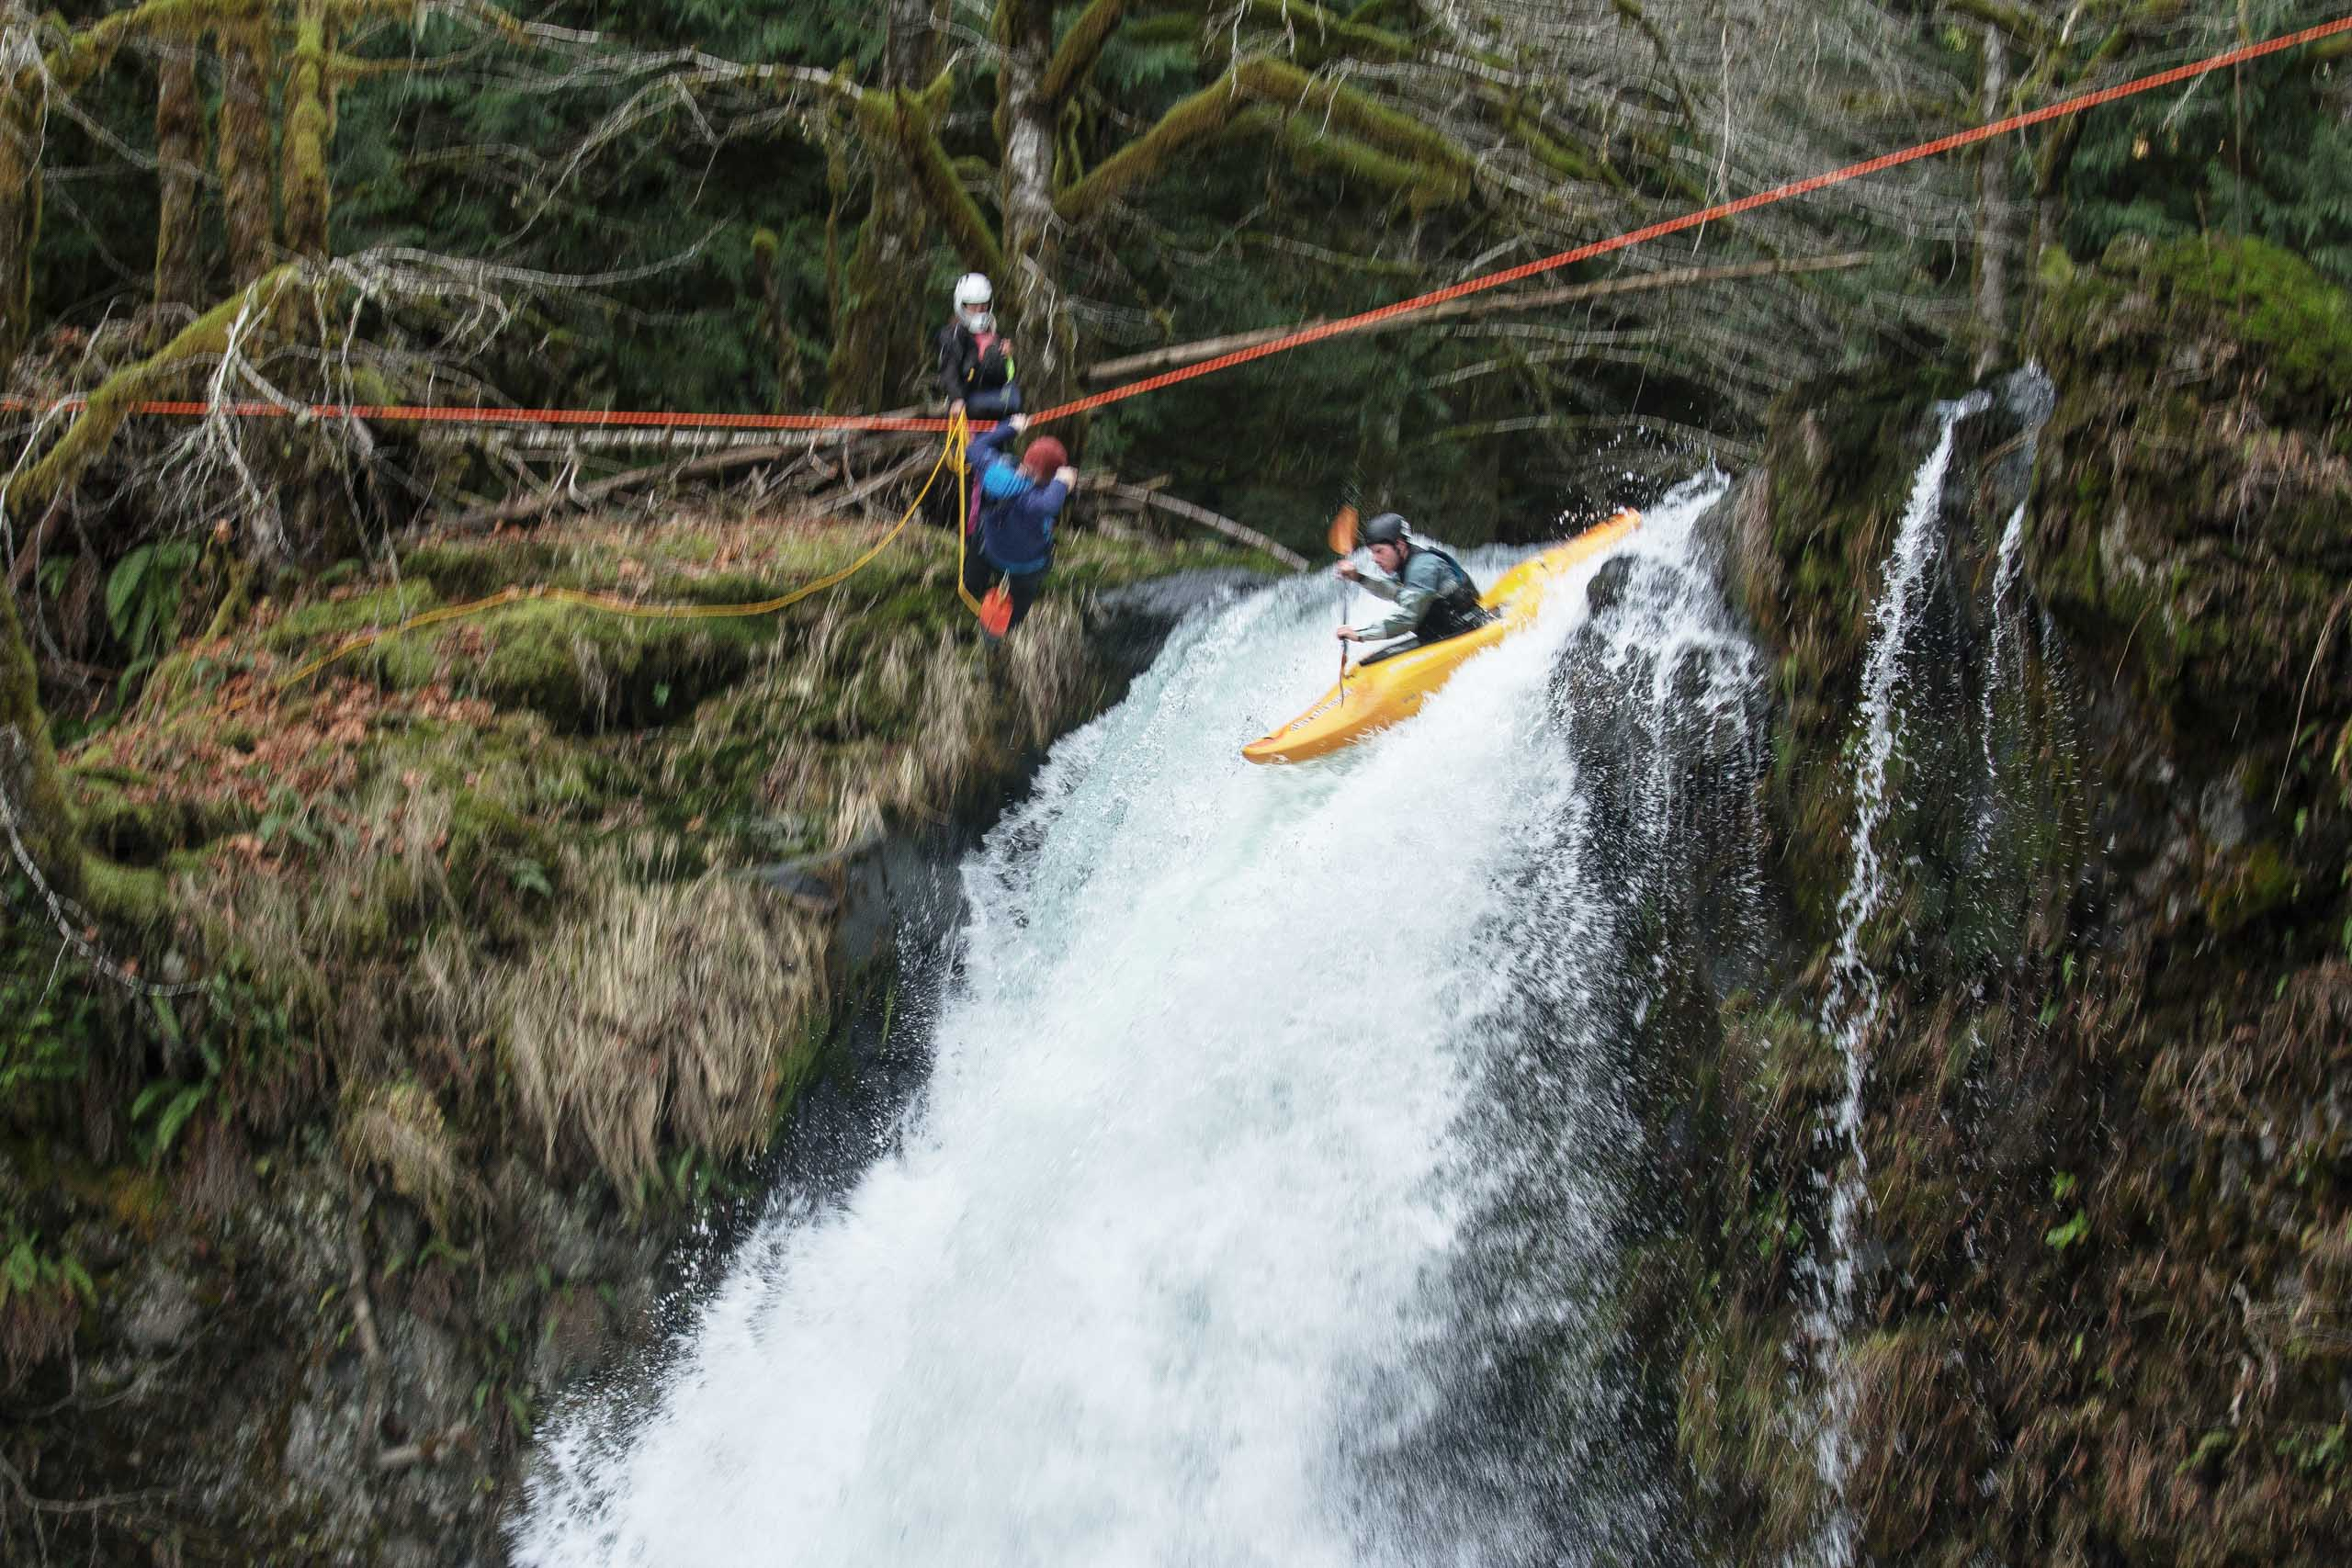 shooting white water kayakers hucking waterfall